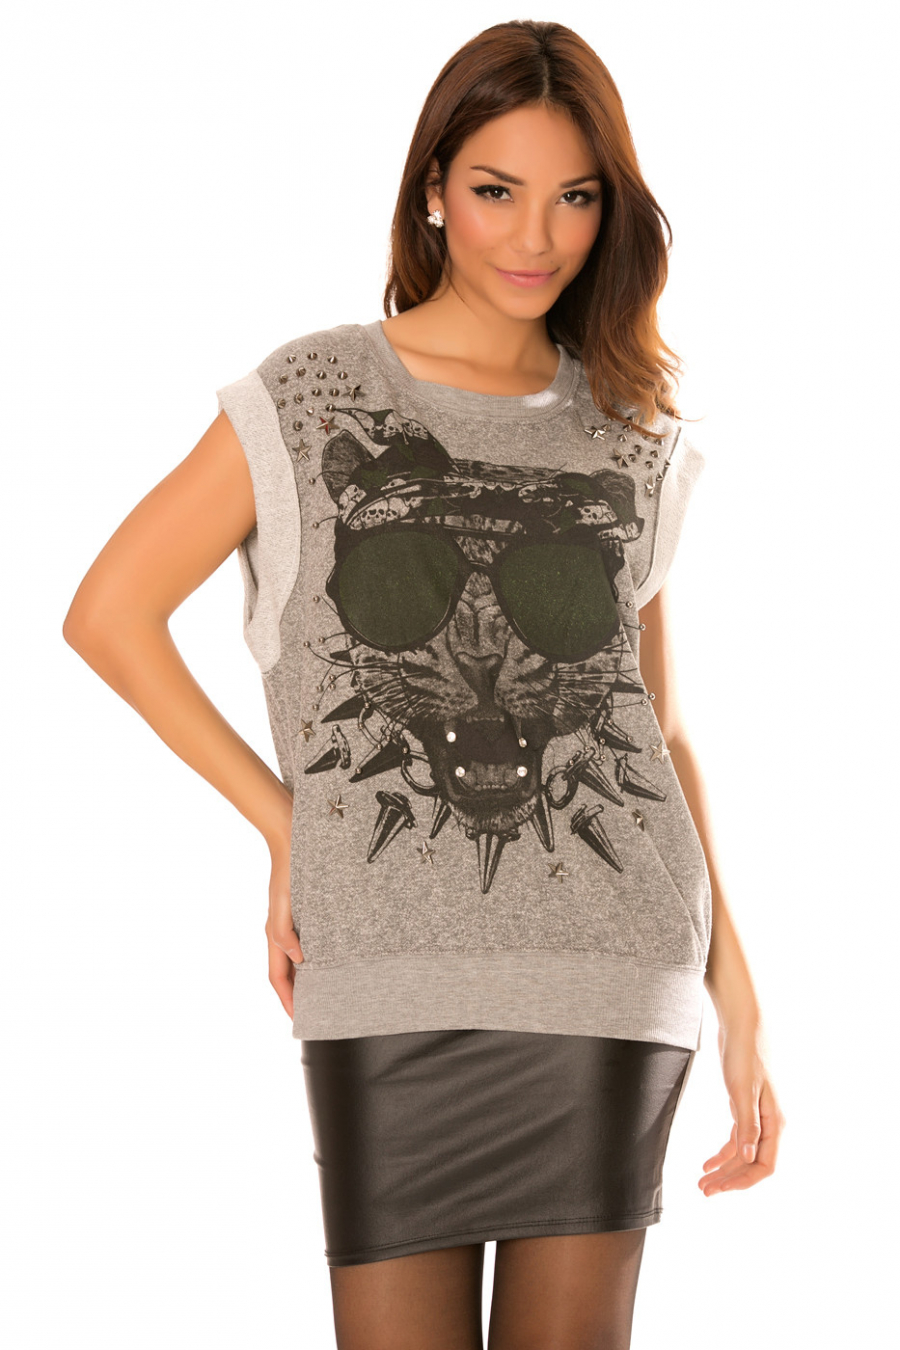 Anthracite sleeveless tiger patterned top with studs on the shoulders. F2260